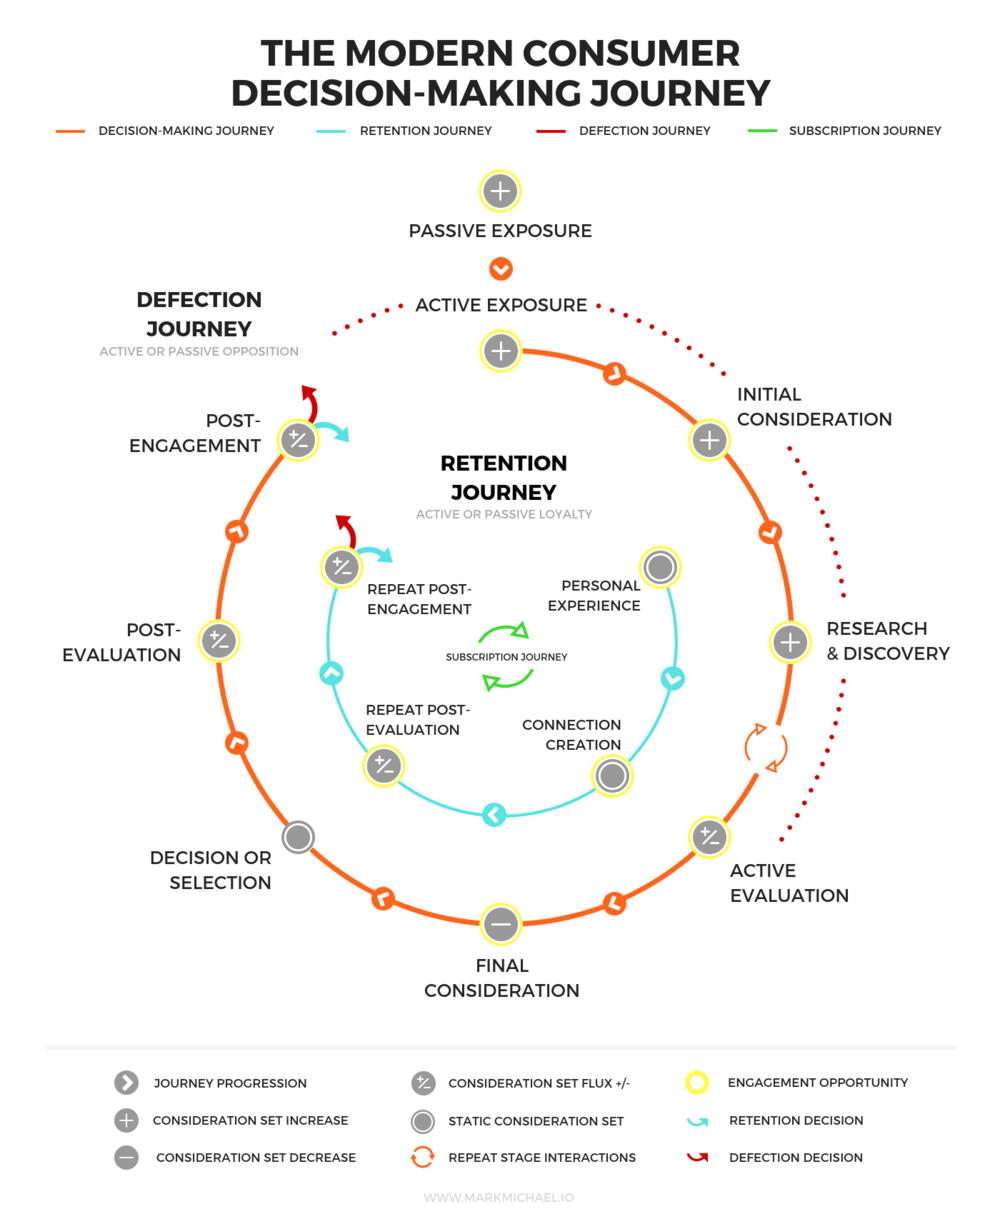 www.MarkMichael.io - Modern Consumer Decision-Making Journey.png